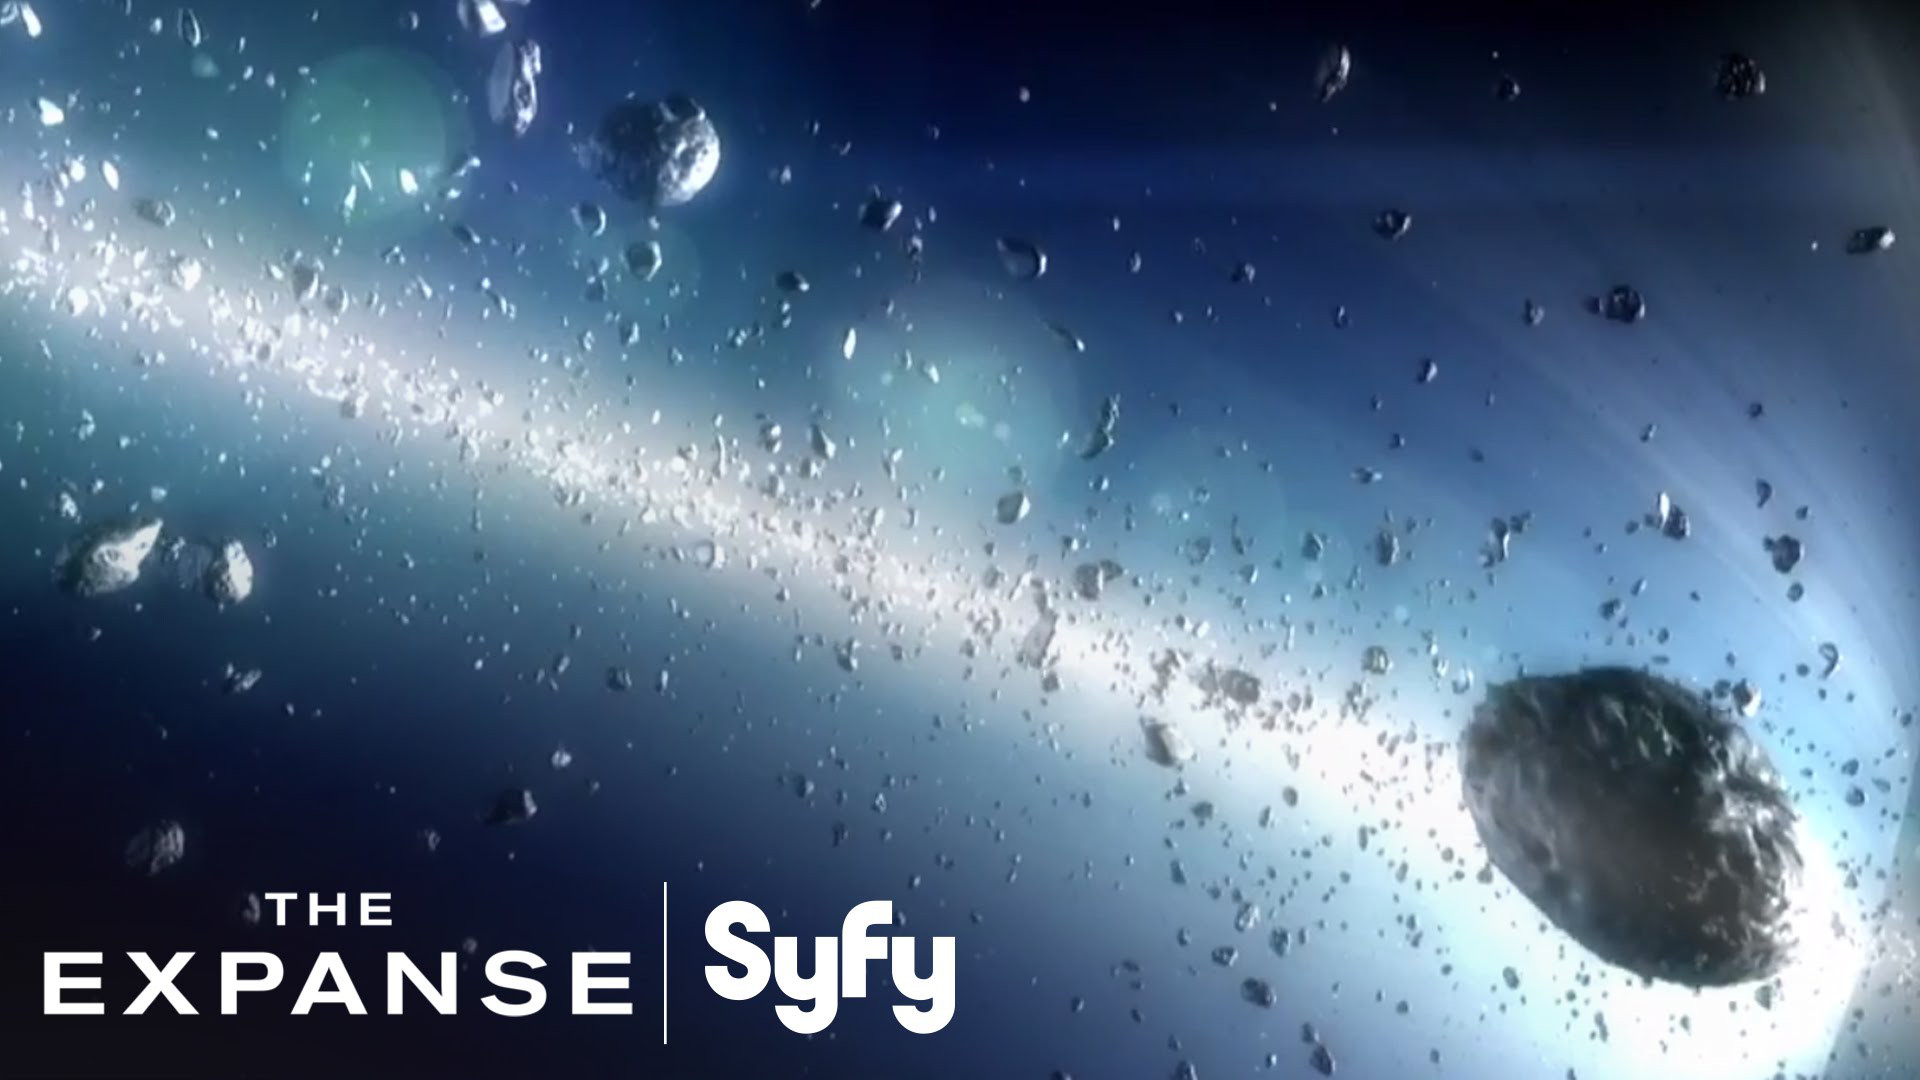 Syfy Launches Expanse Virtual Reality App With Google